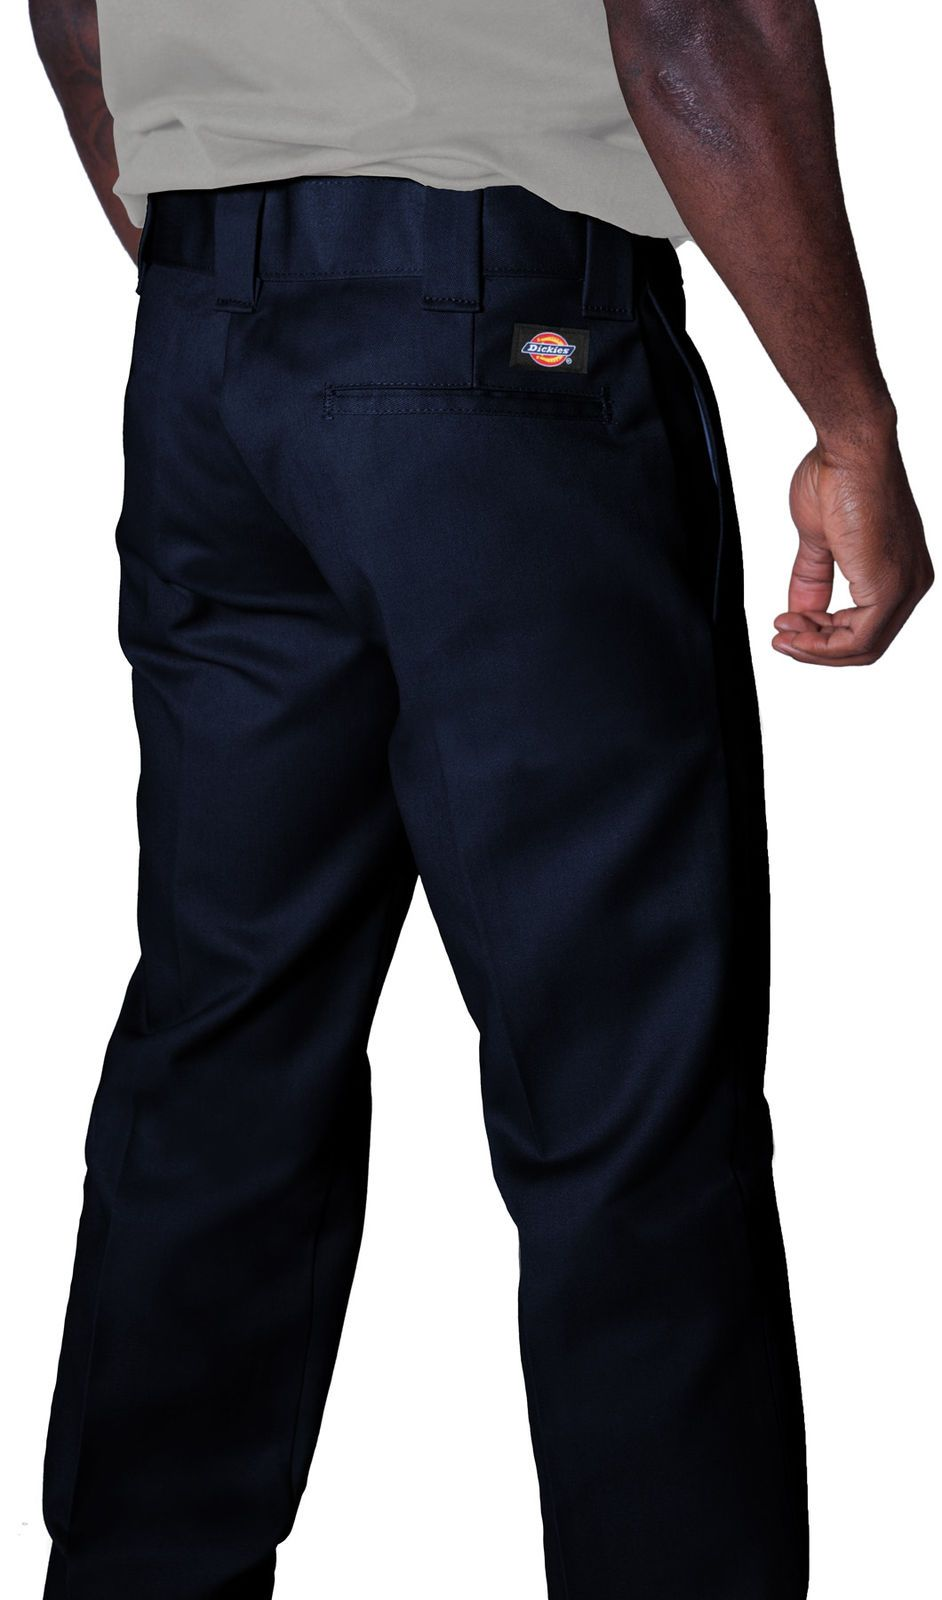 Close-up angled back view of navy twill fabric work pants showing 'Dickies' logo, back pocket and belt loops.